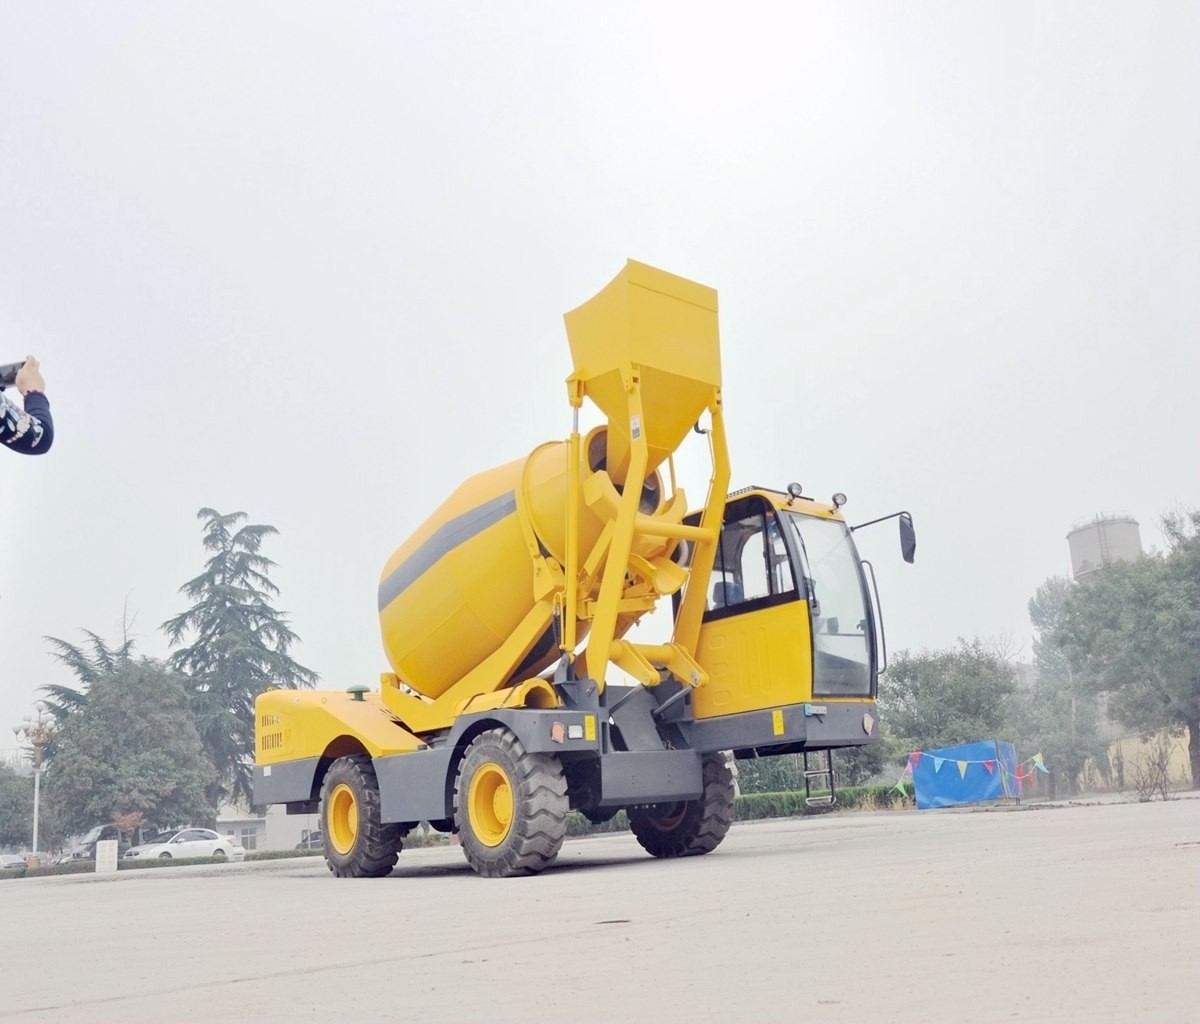 Sales Self Loading Mobile Concrete Mixer, Buy Self Loading Mobile Concrete Mixer, Self Loading Mobile Concrete Mixer Factory, Self Loading Mobile Concrete Mixer Brands